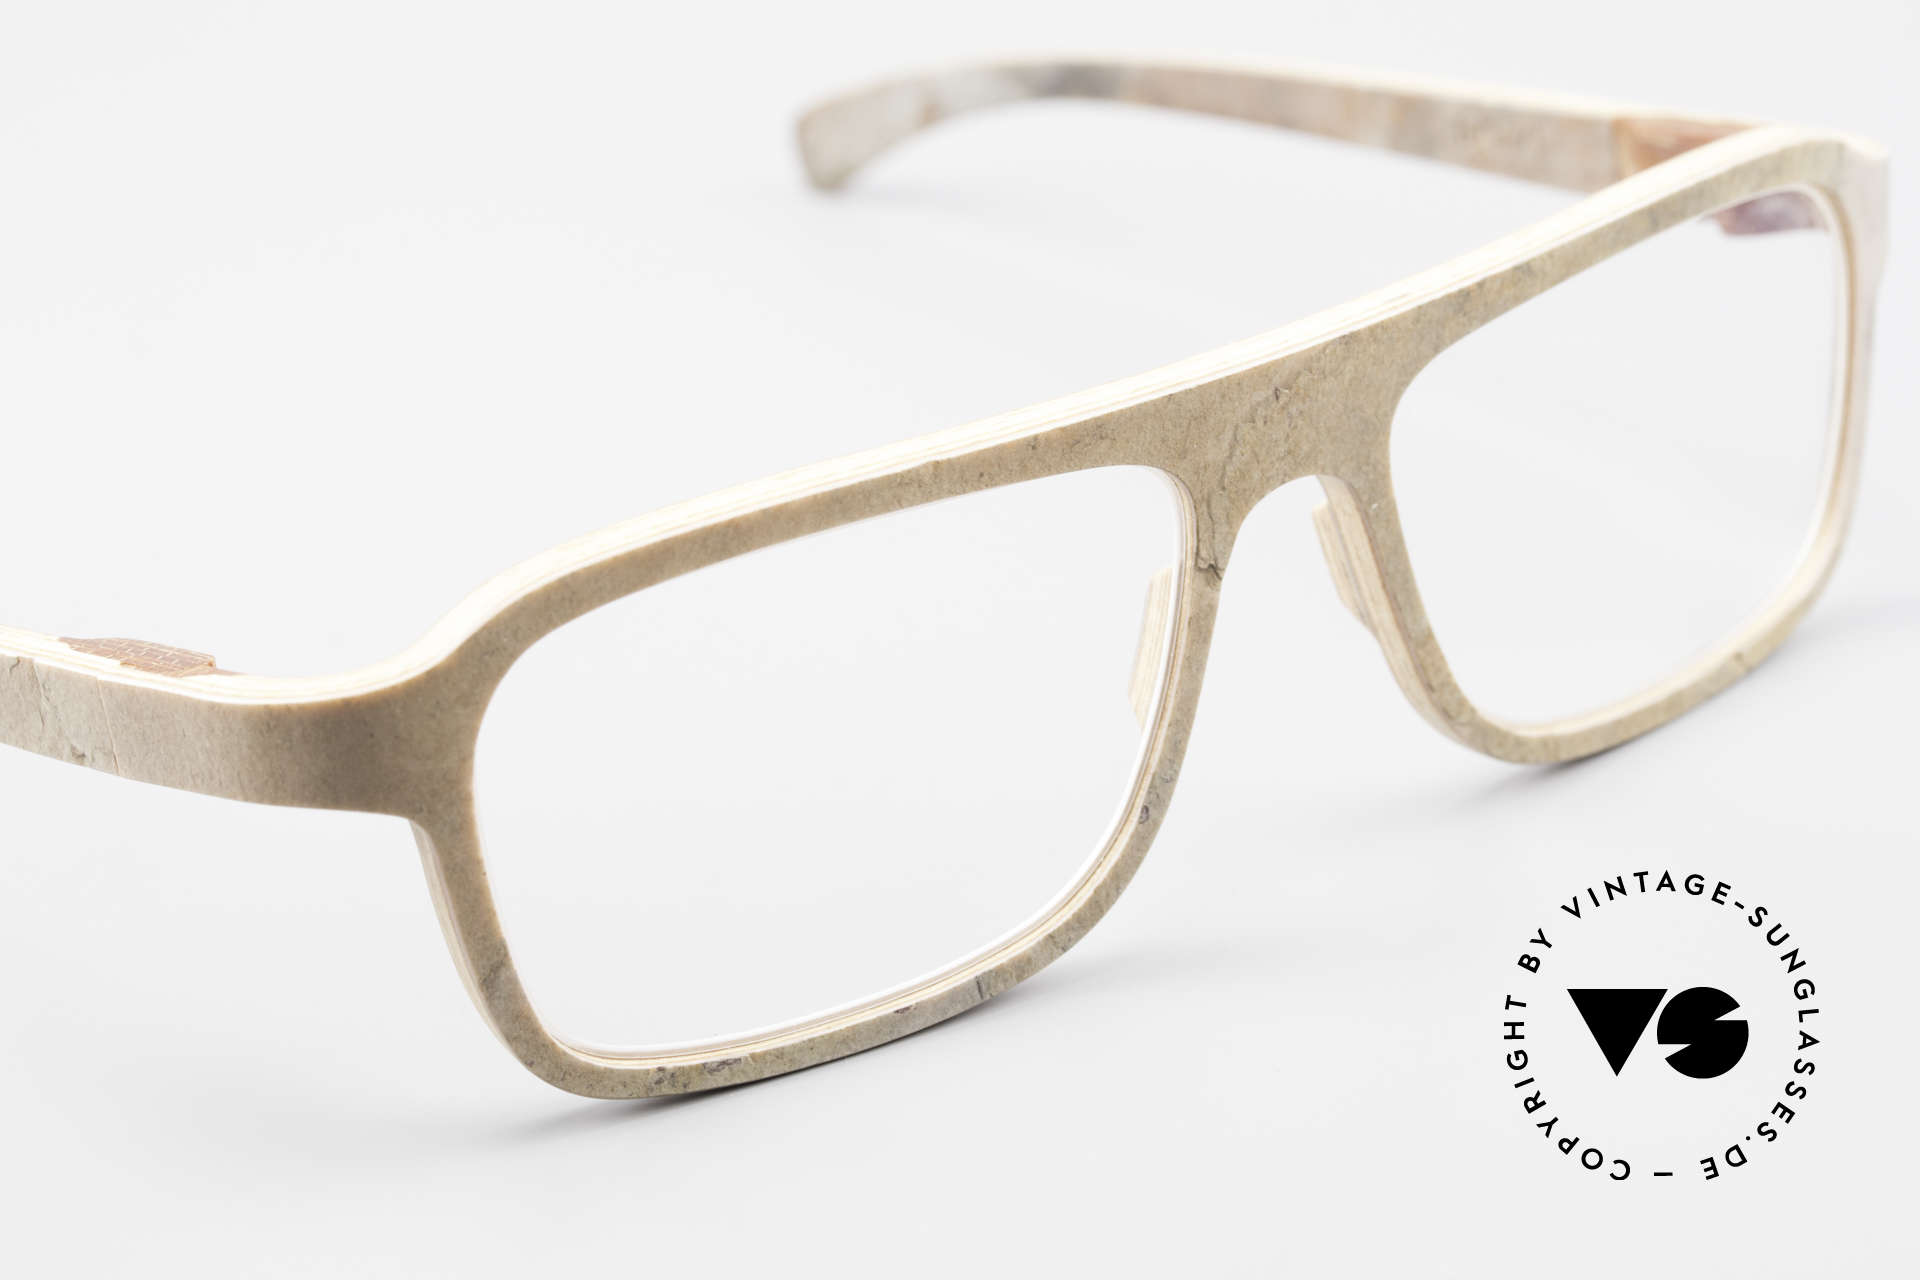 Rolf Spectacles Dino 41 Stone Eyewear & Wood Frame, unworn Original (like all our vintage Rolf Spectacles), Made for Men